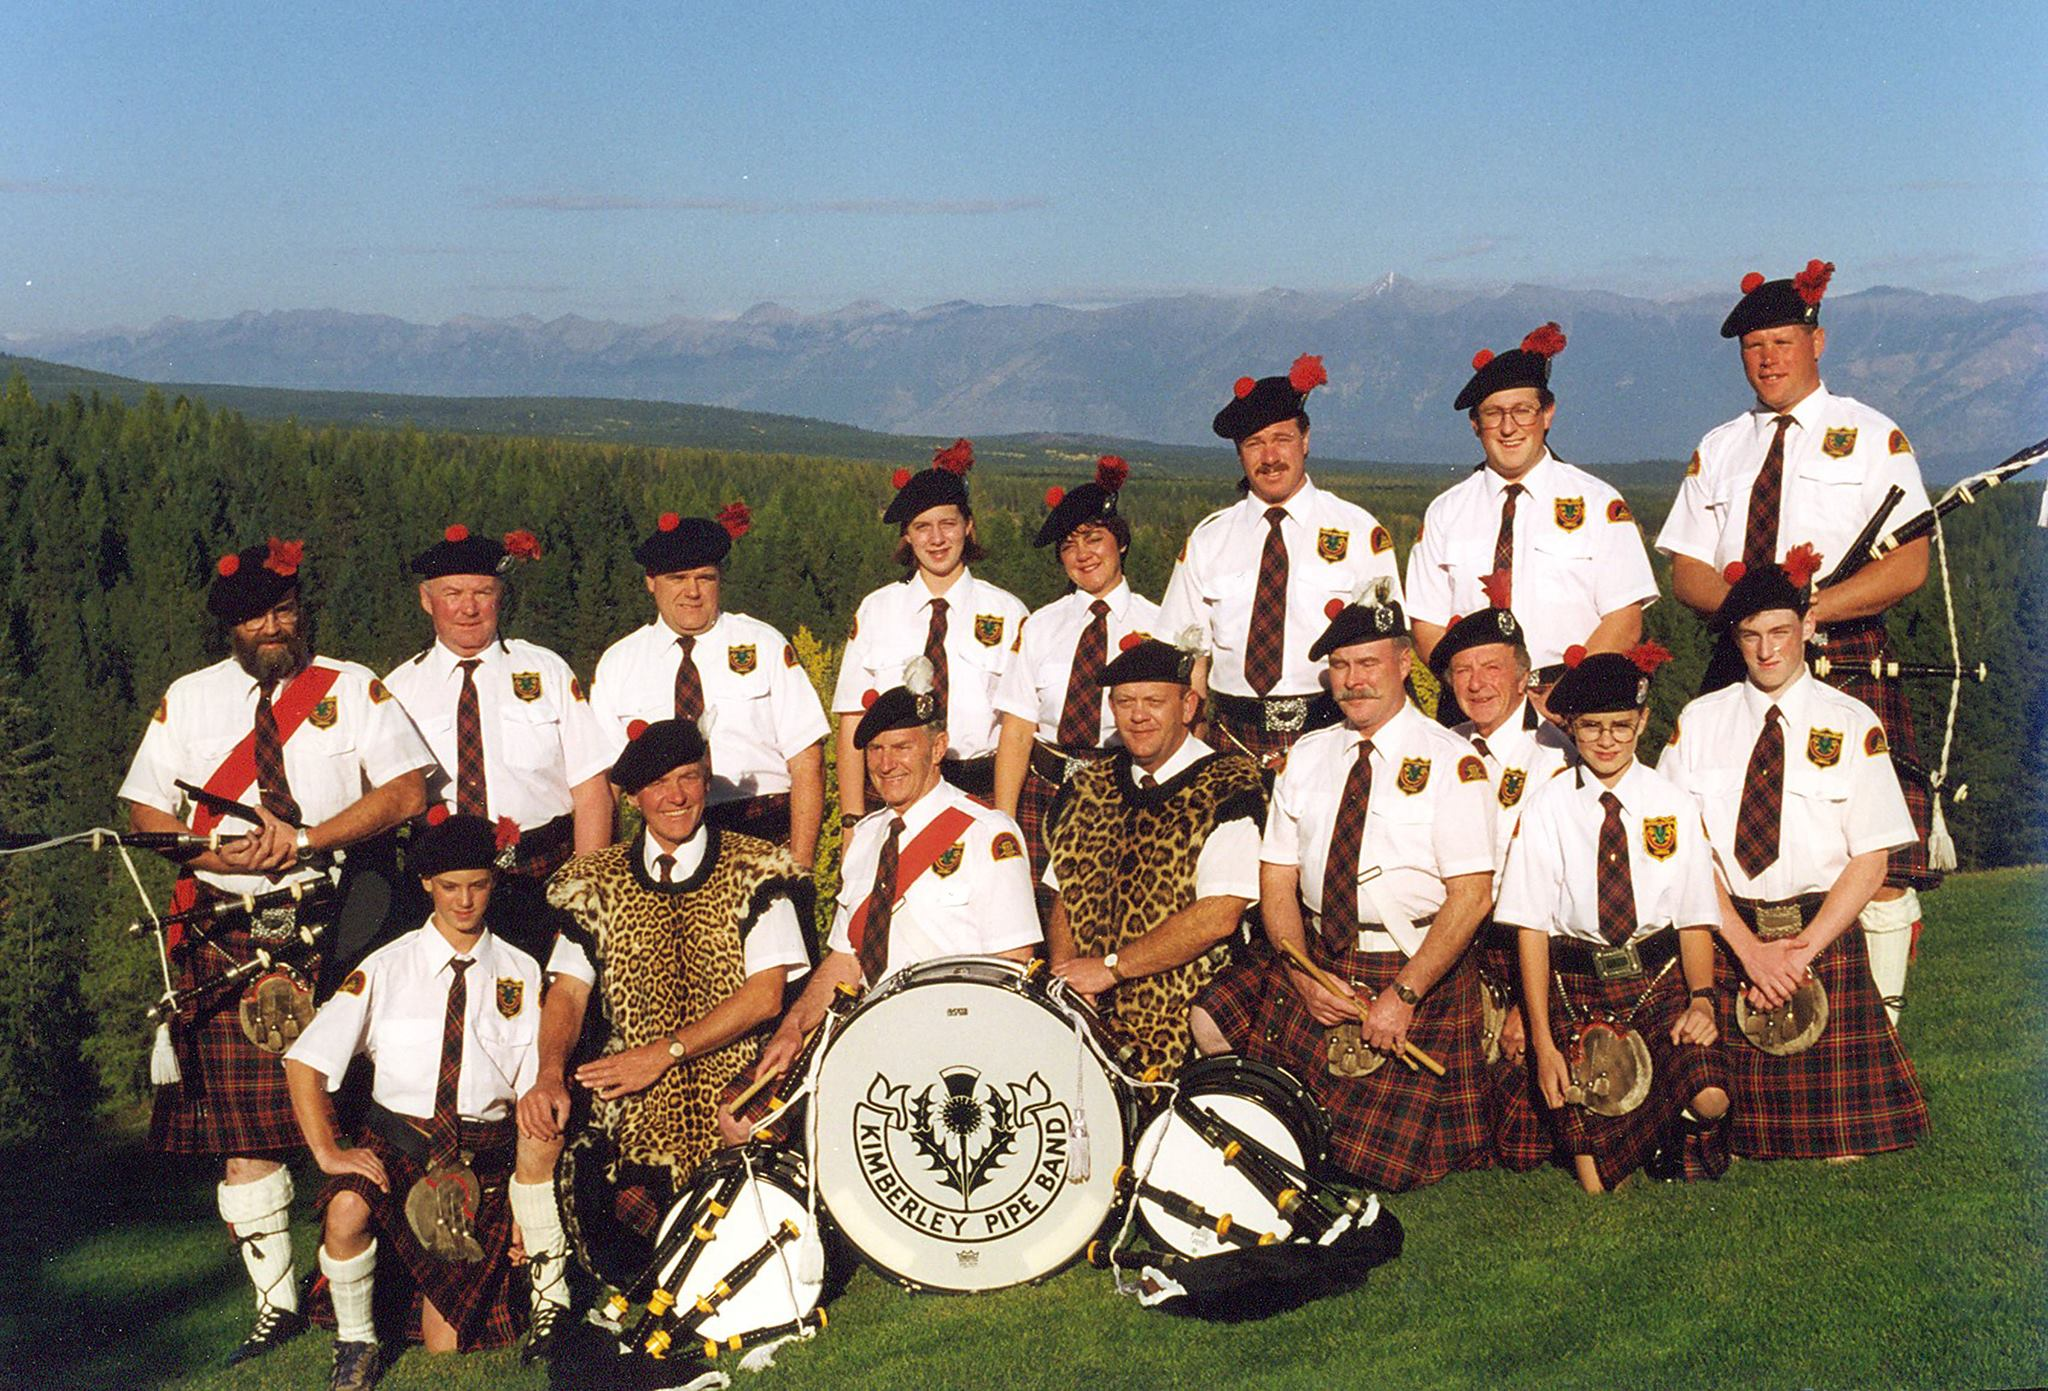 Kimberley Pipe Band celebrates 90th anniversary this weekend